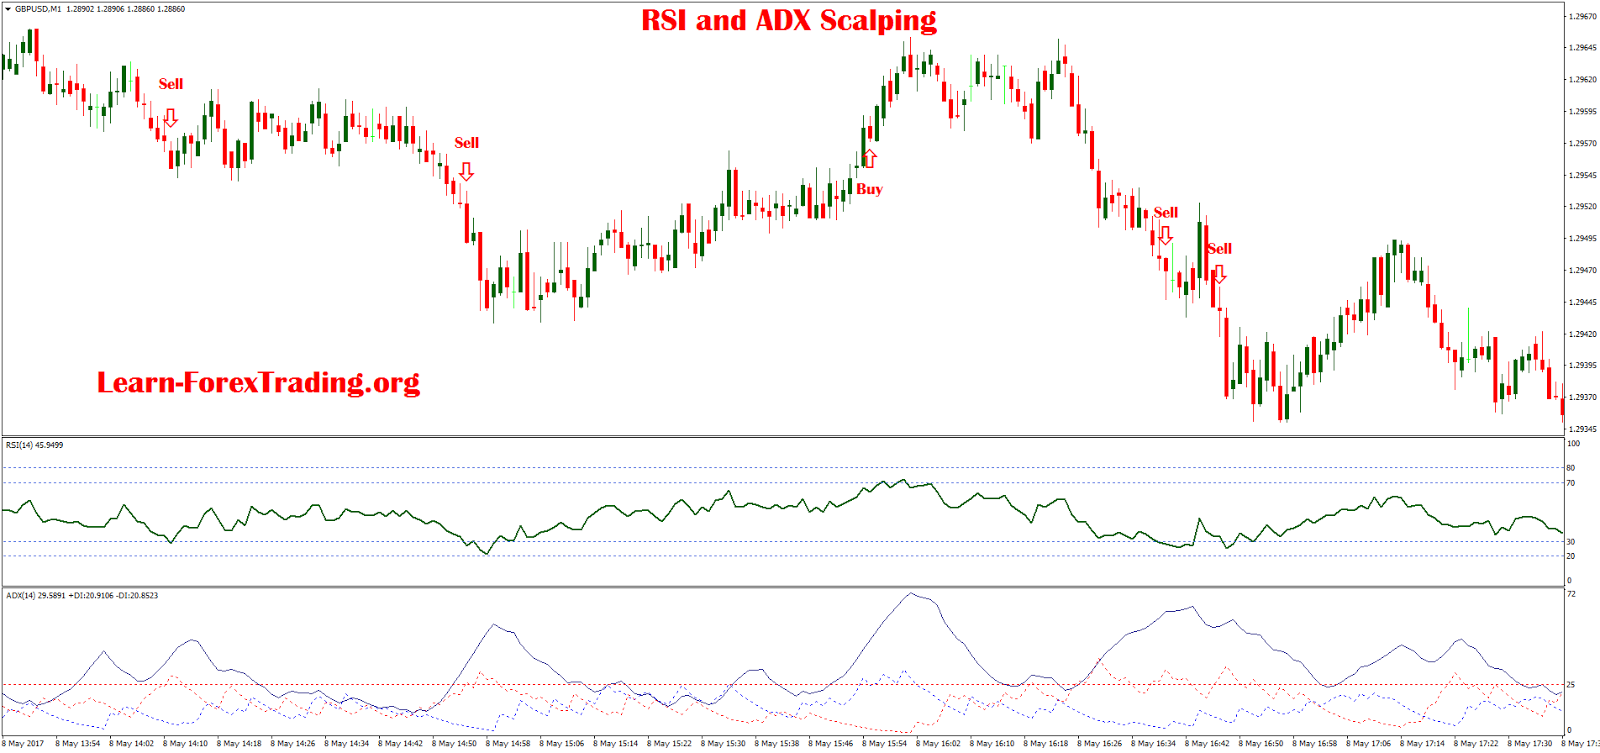 bollinger bands adx and rsi forex scalping trading strategy